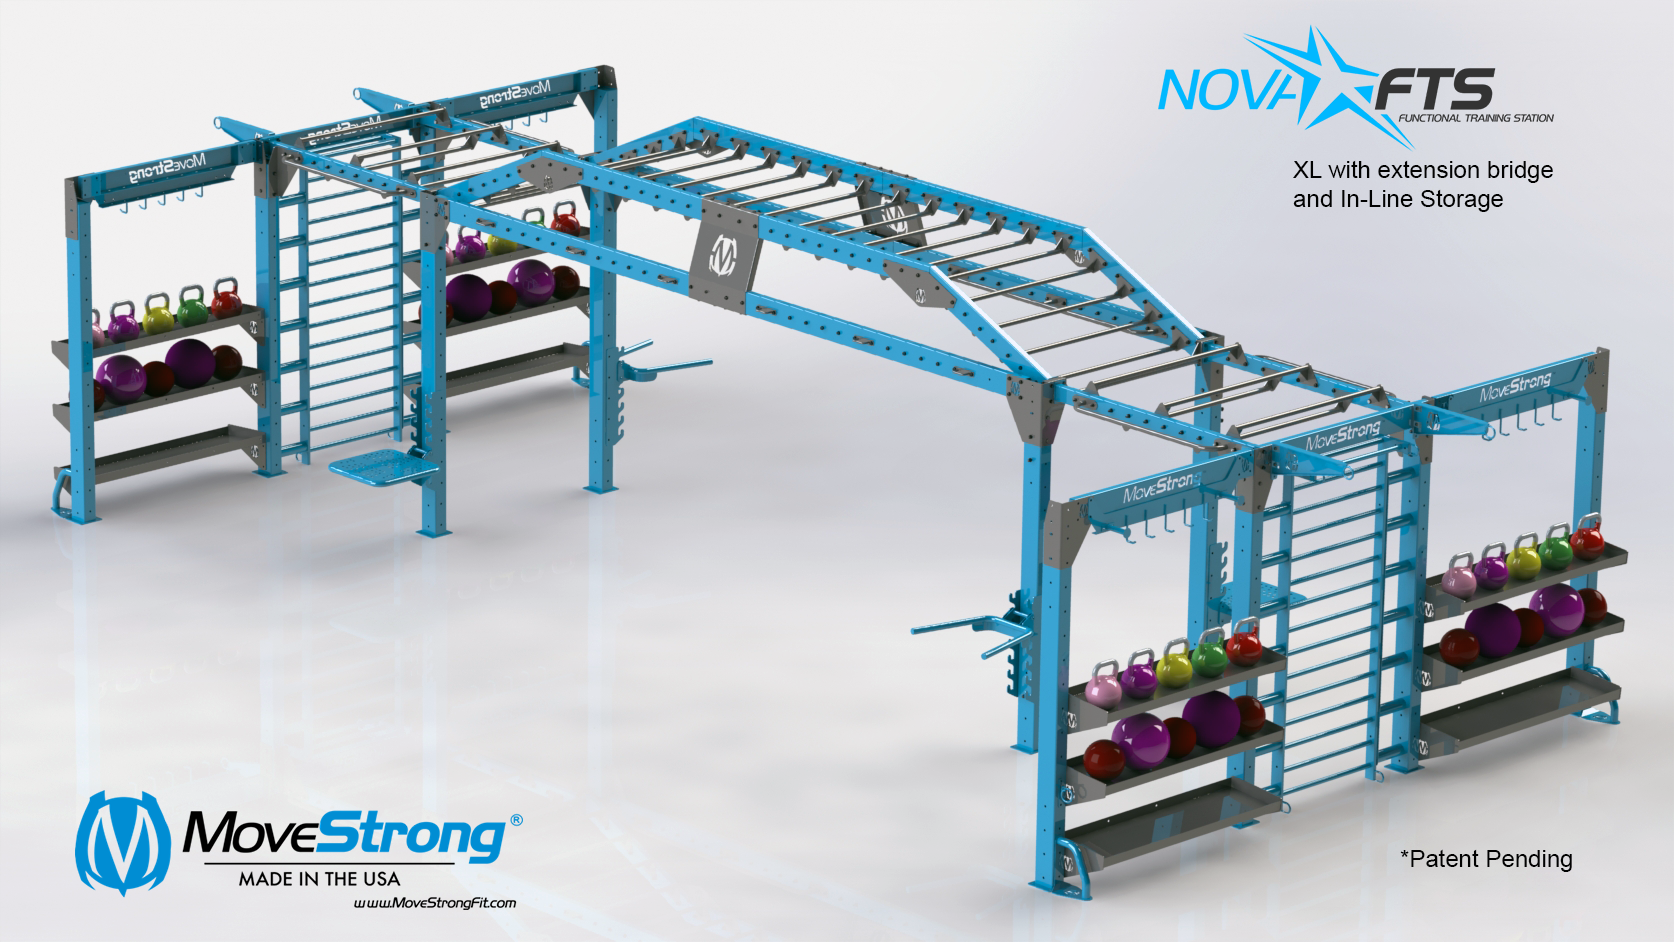 Training and Storage Solutions at end of Nova XL with extended monkey bar bridge